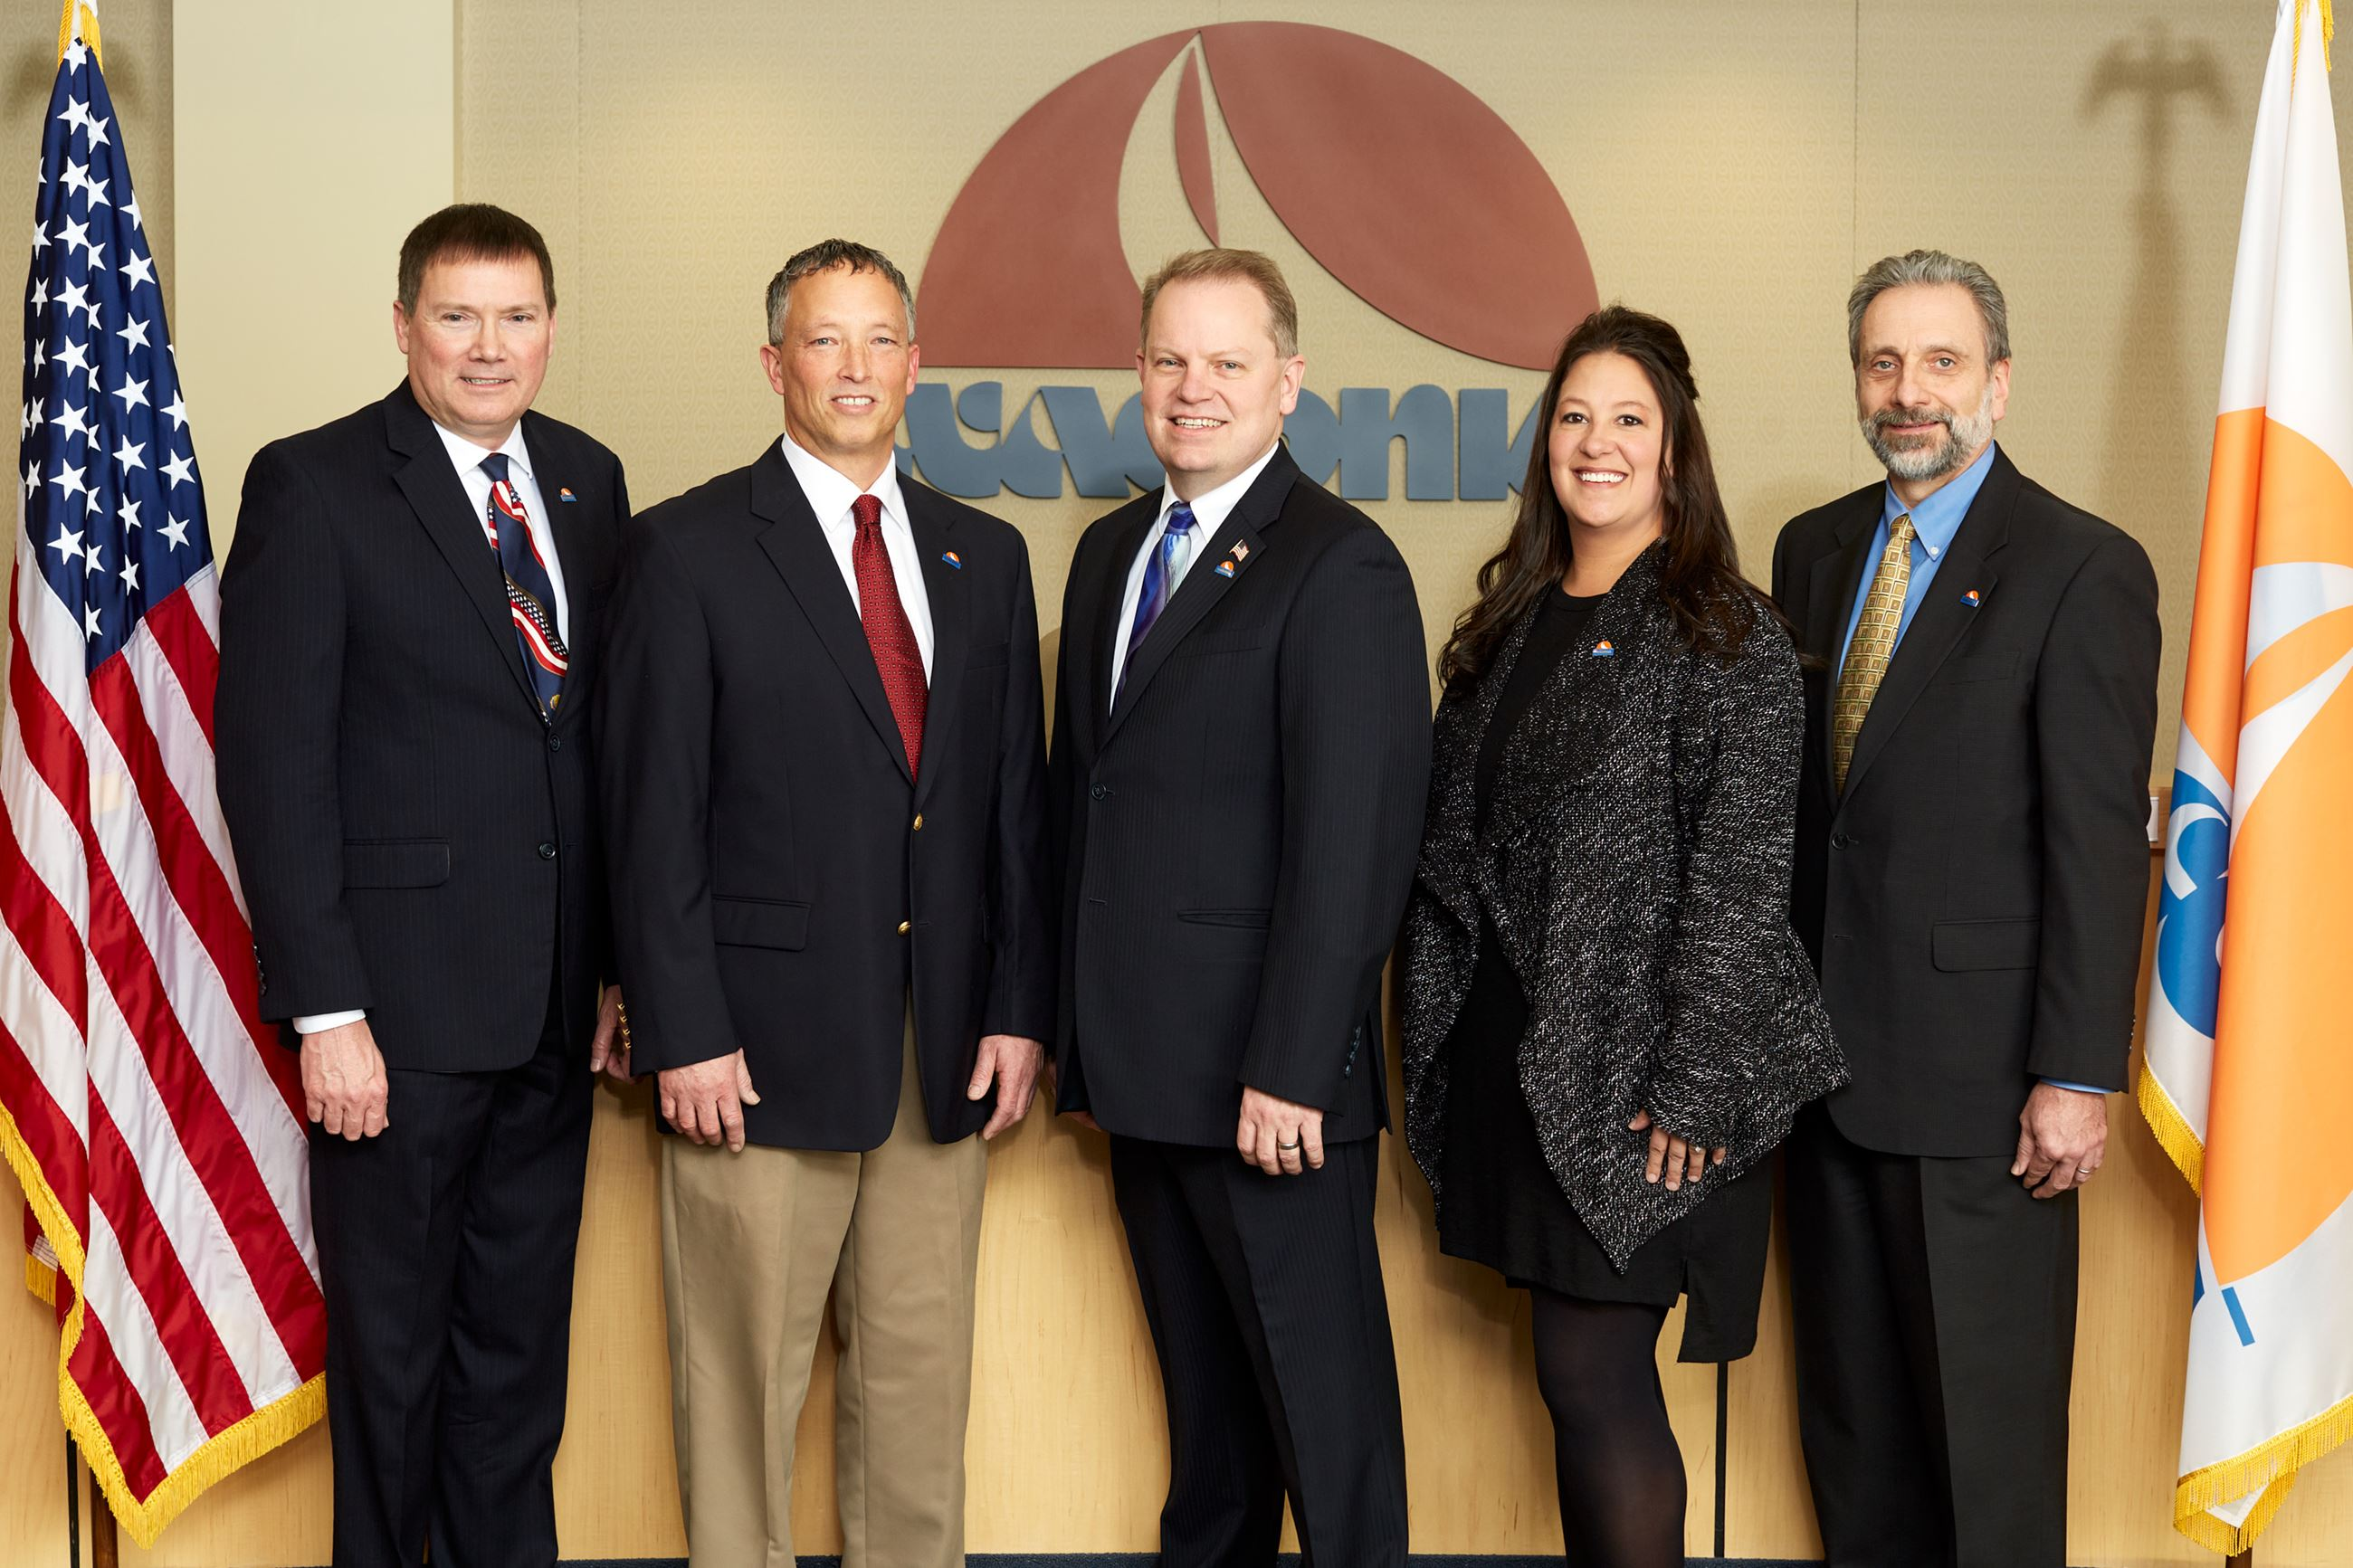 Council Group (left to right: Charles Erickson, Kent Bloudek, James Sanborn, Nicole Waldron, Marc Ca